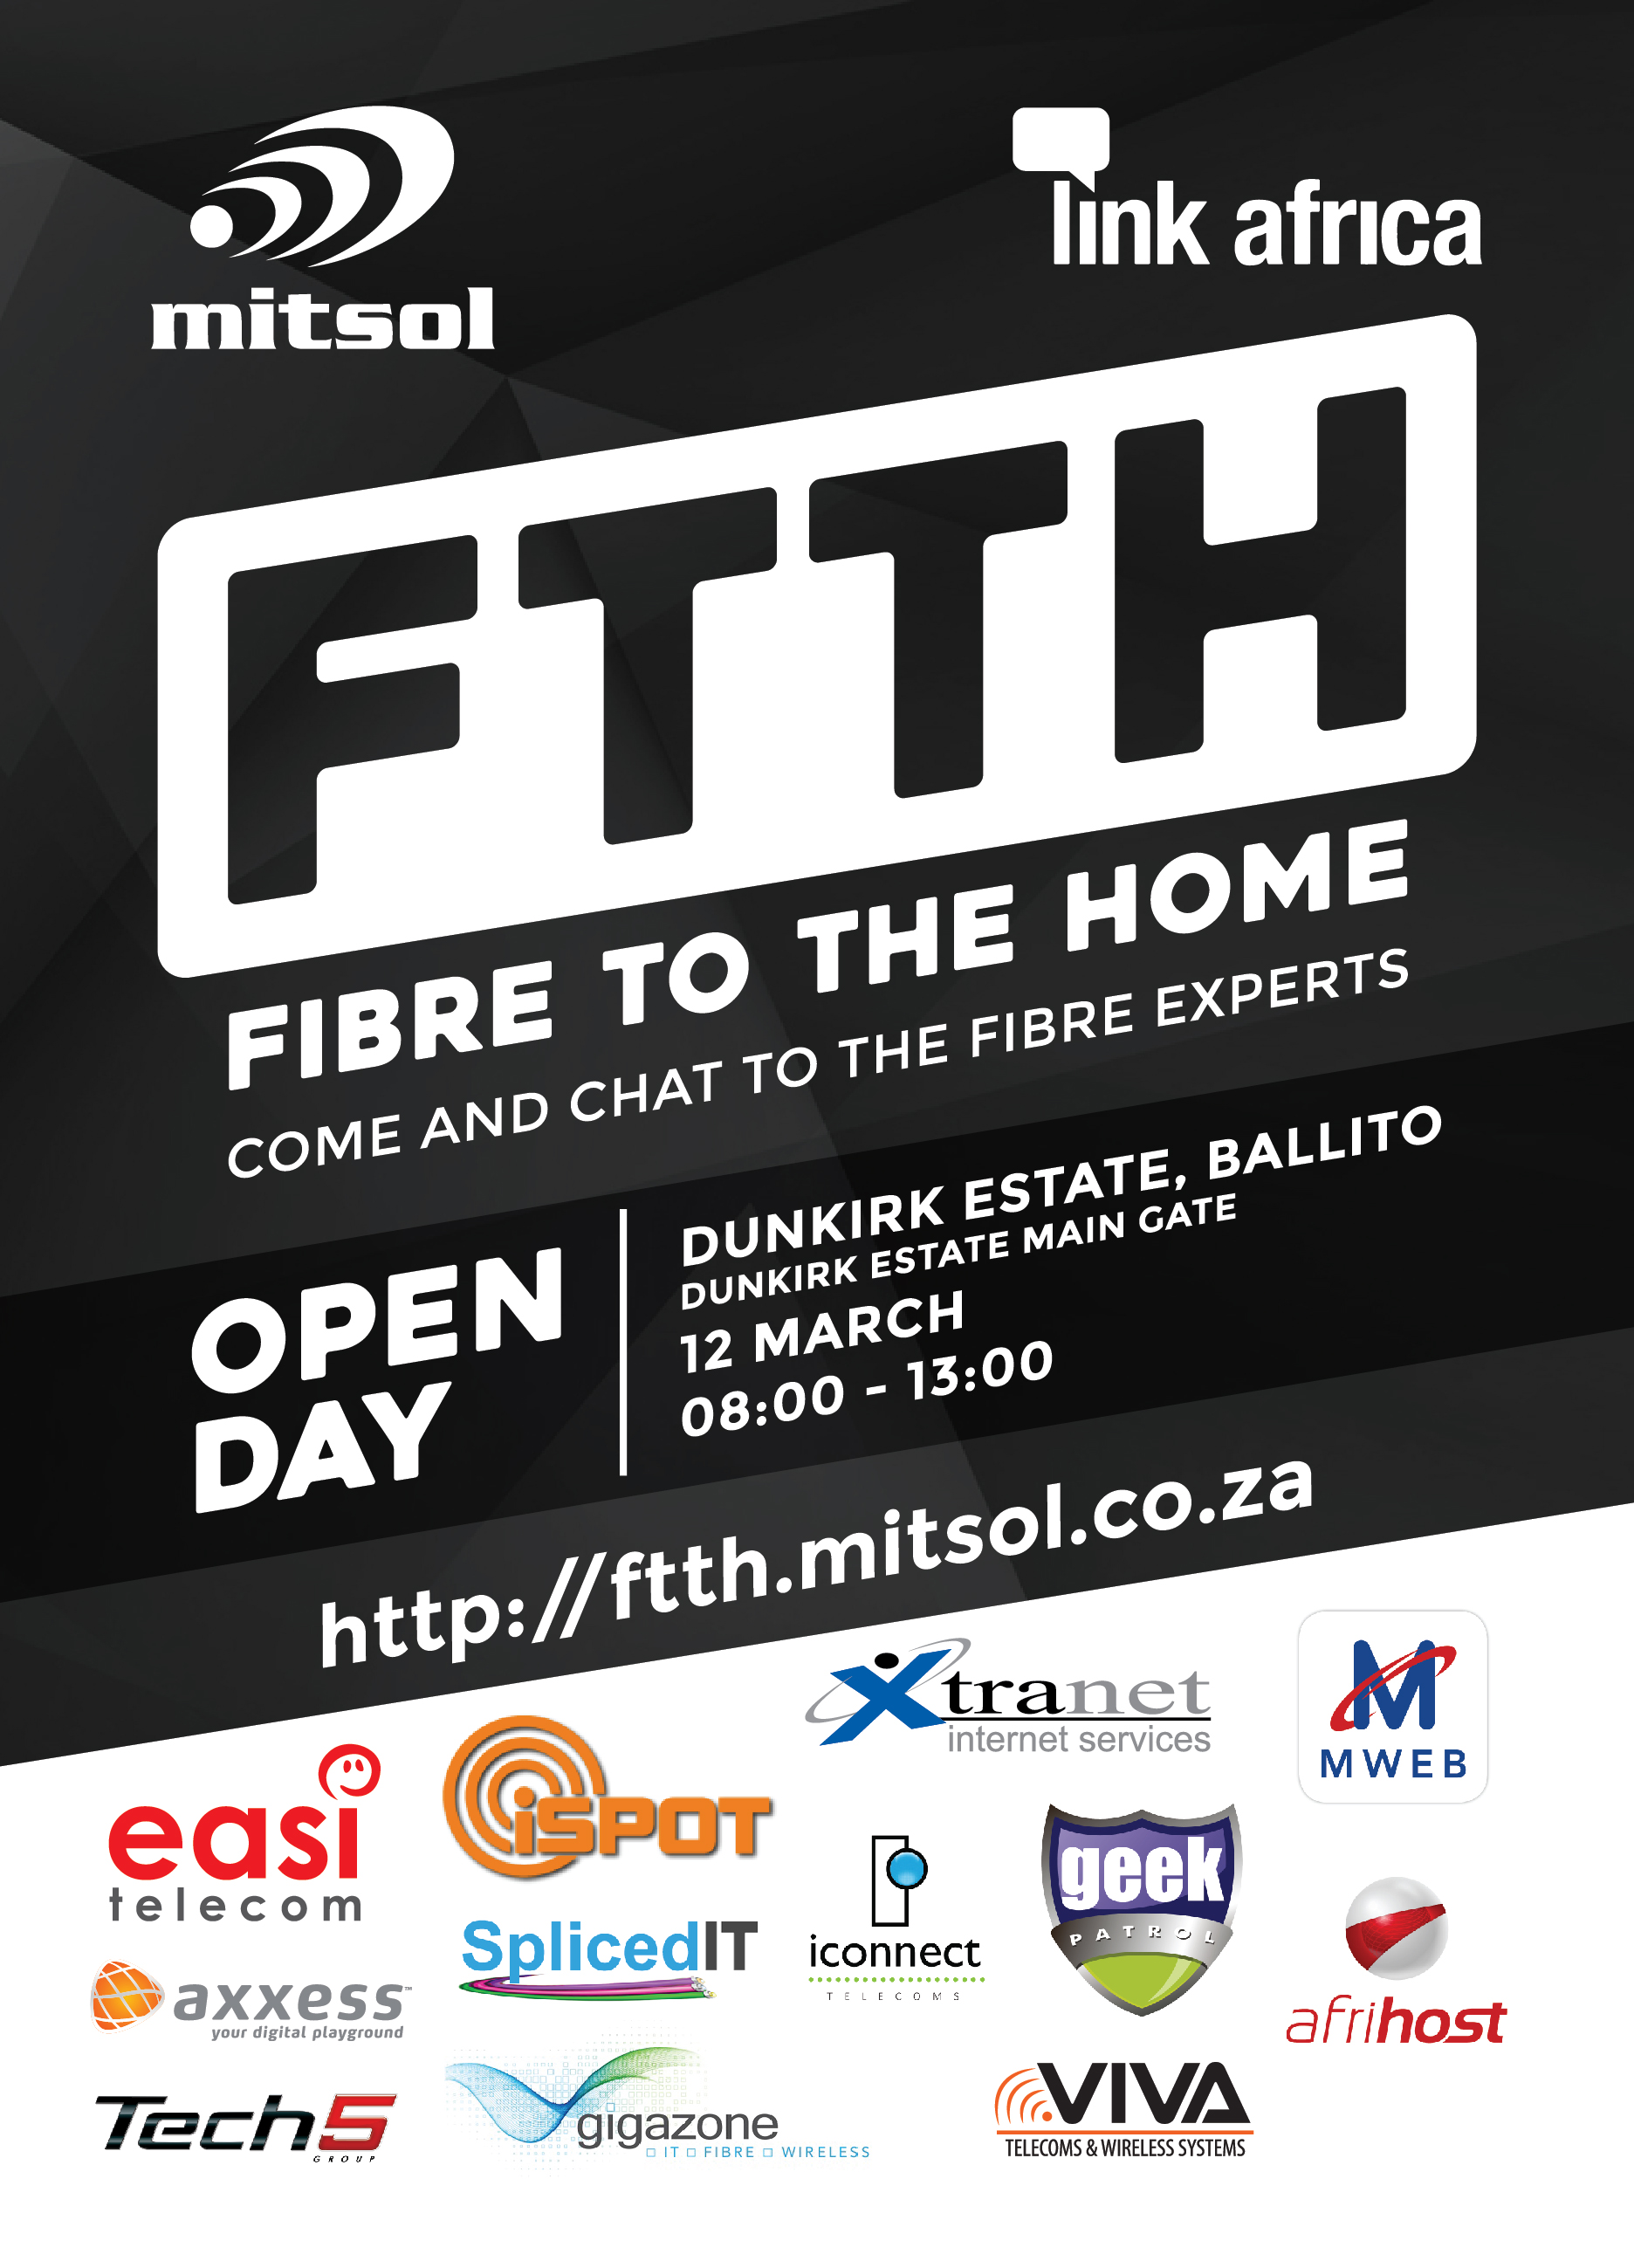 Mitsol Fibre to the home FLYER Dunkirk Estate Ballito